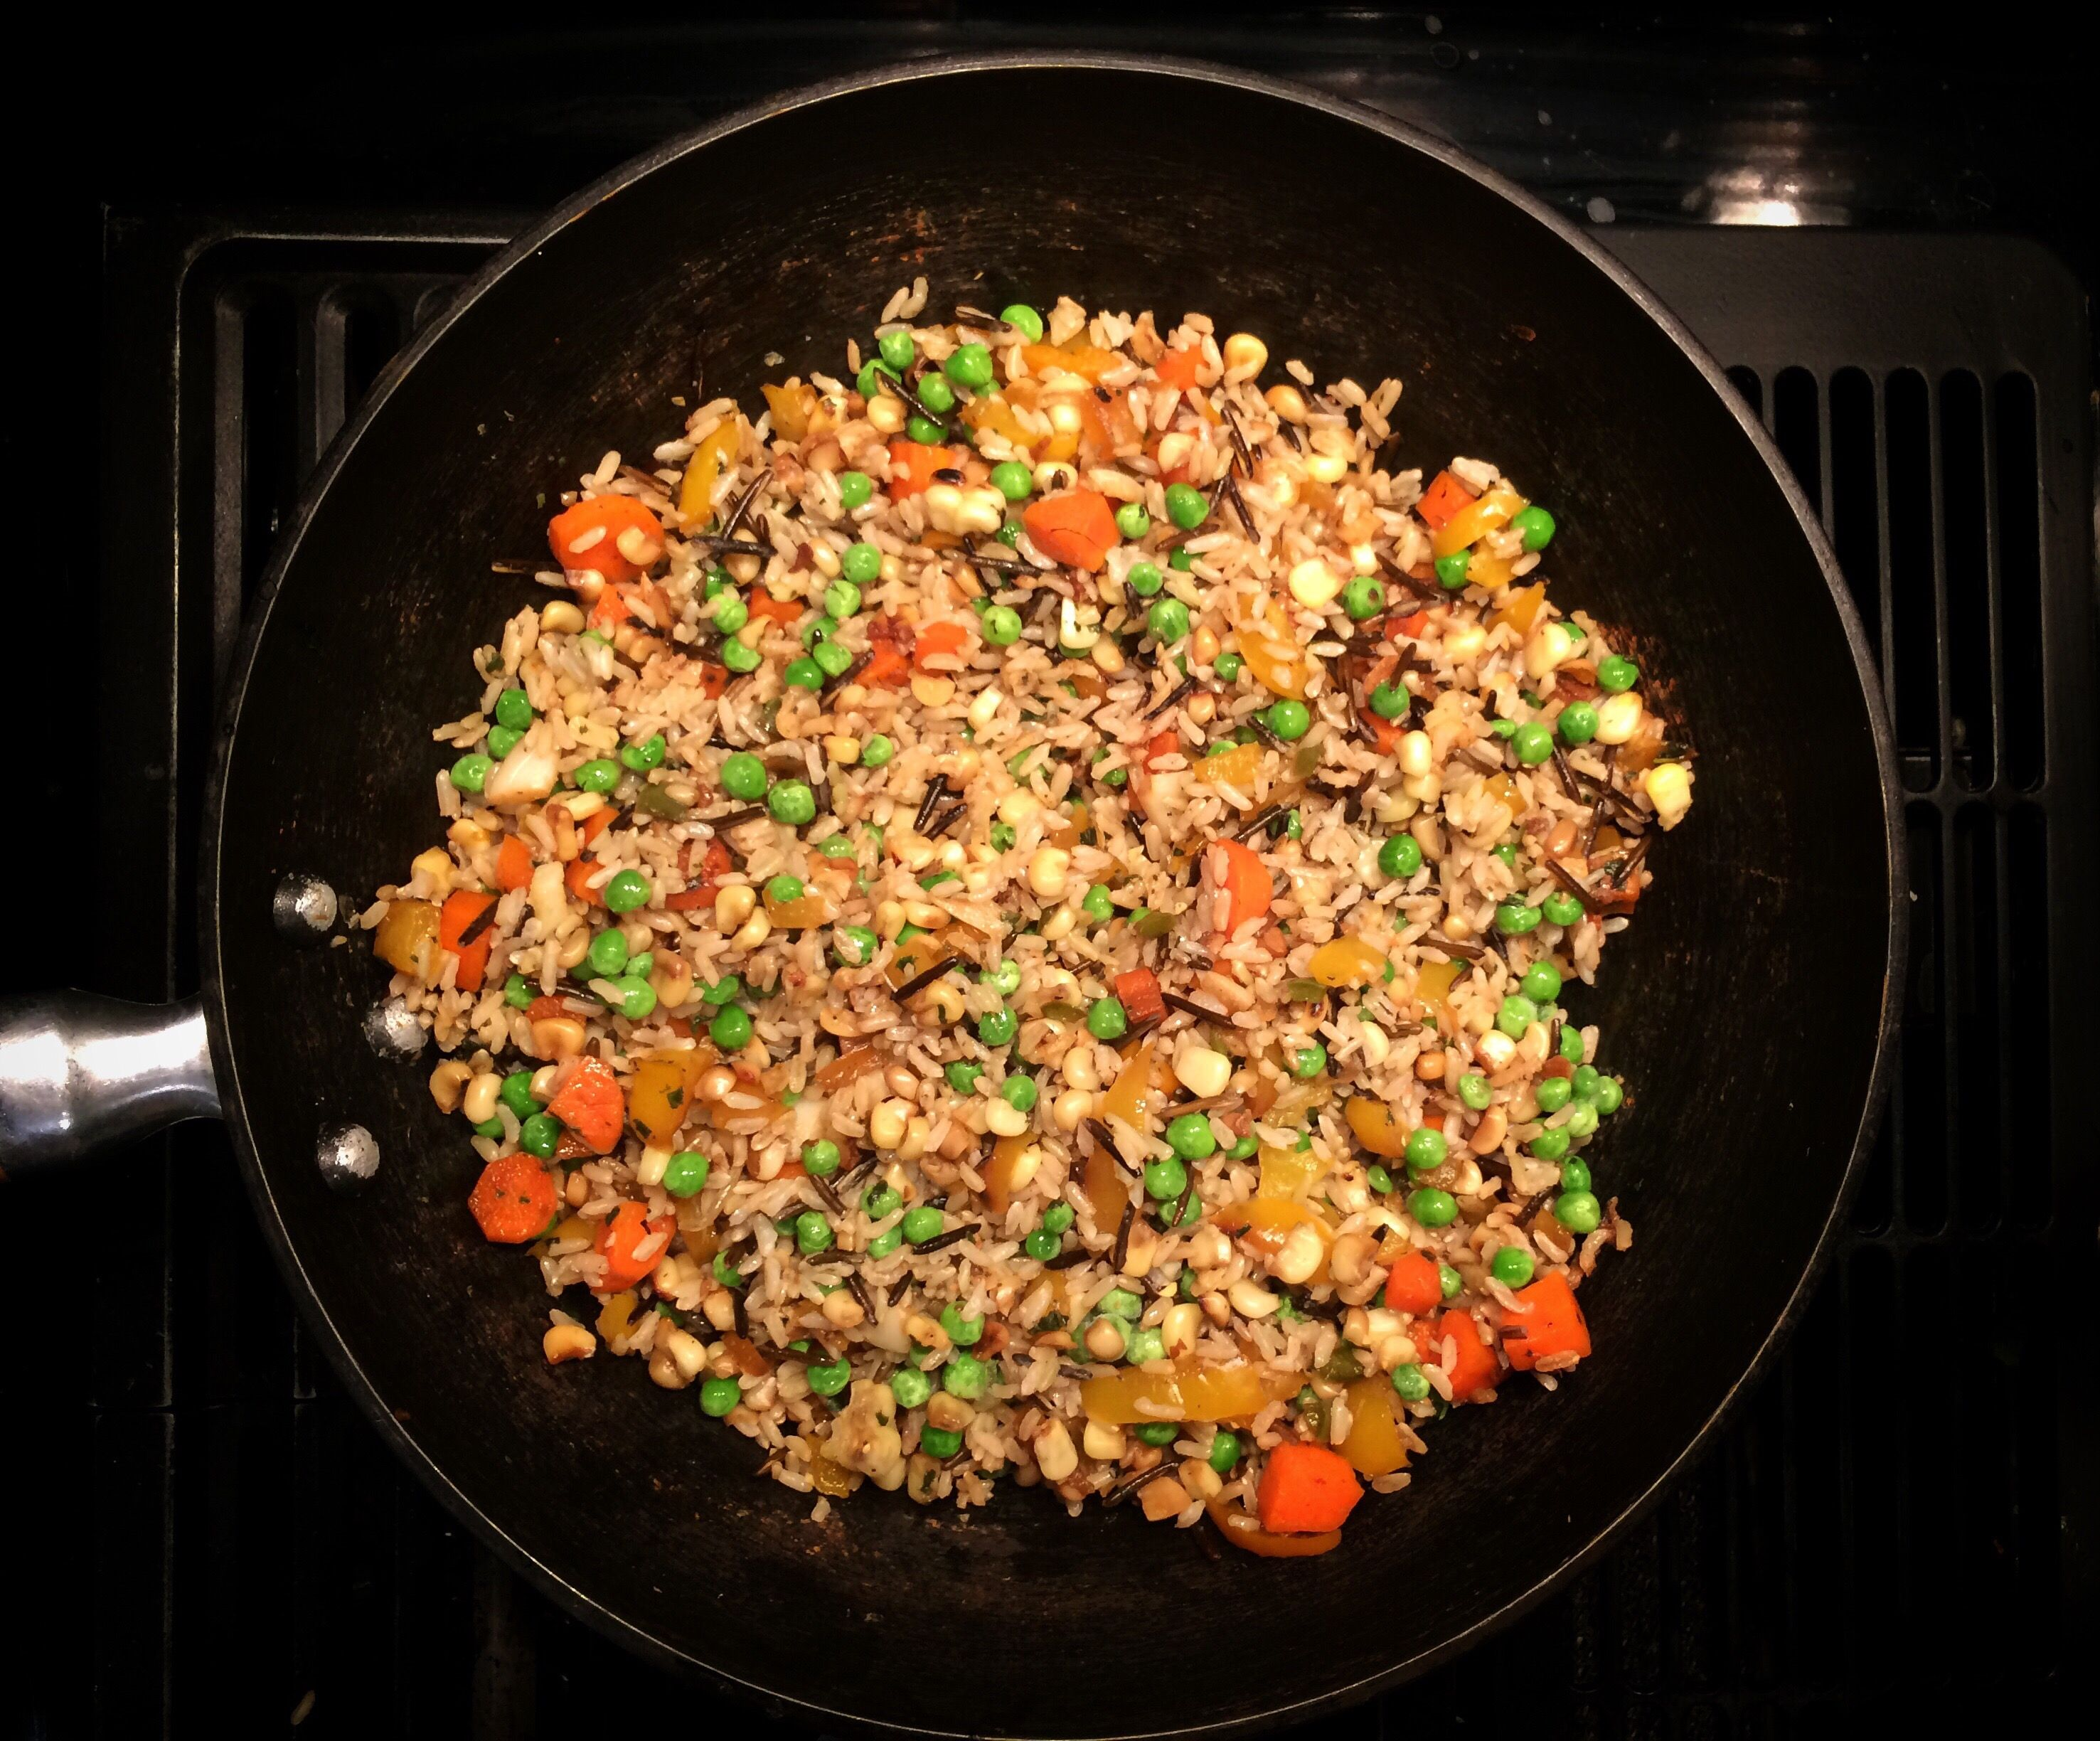 Use Math and Physics to Flip the Best Fried Rice